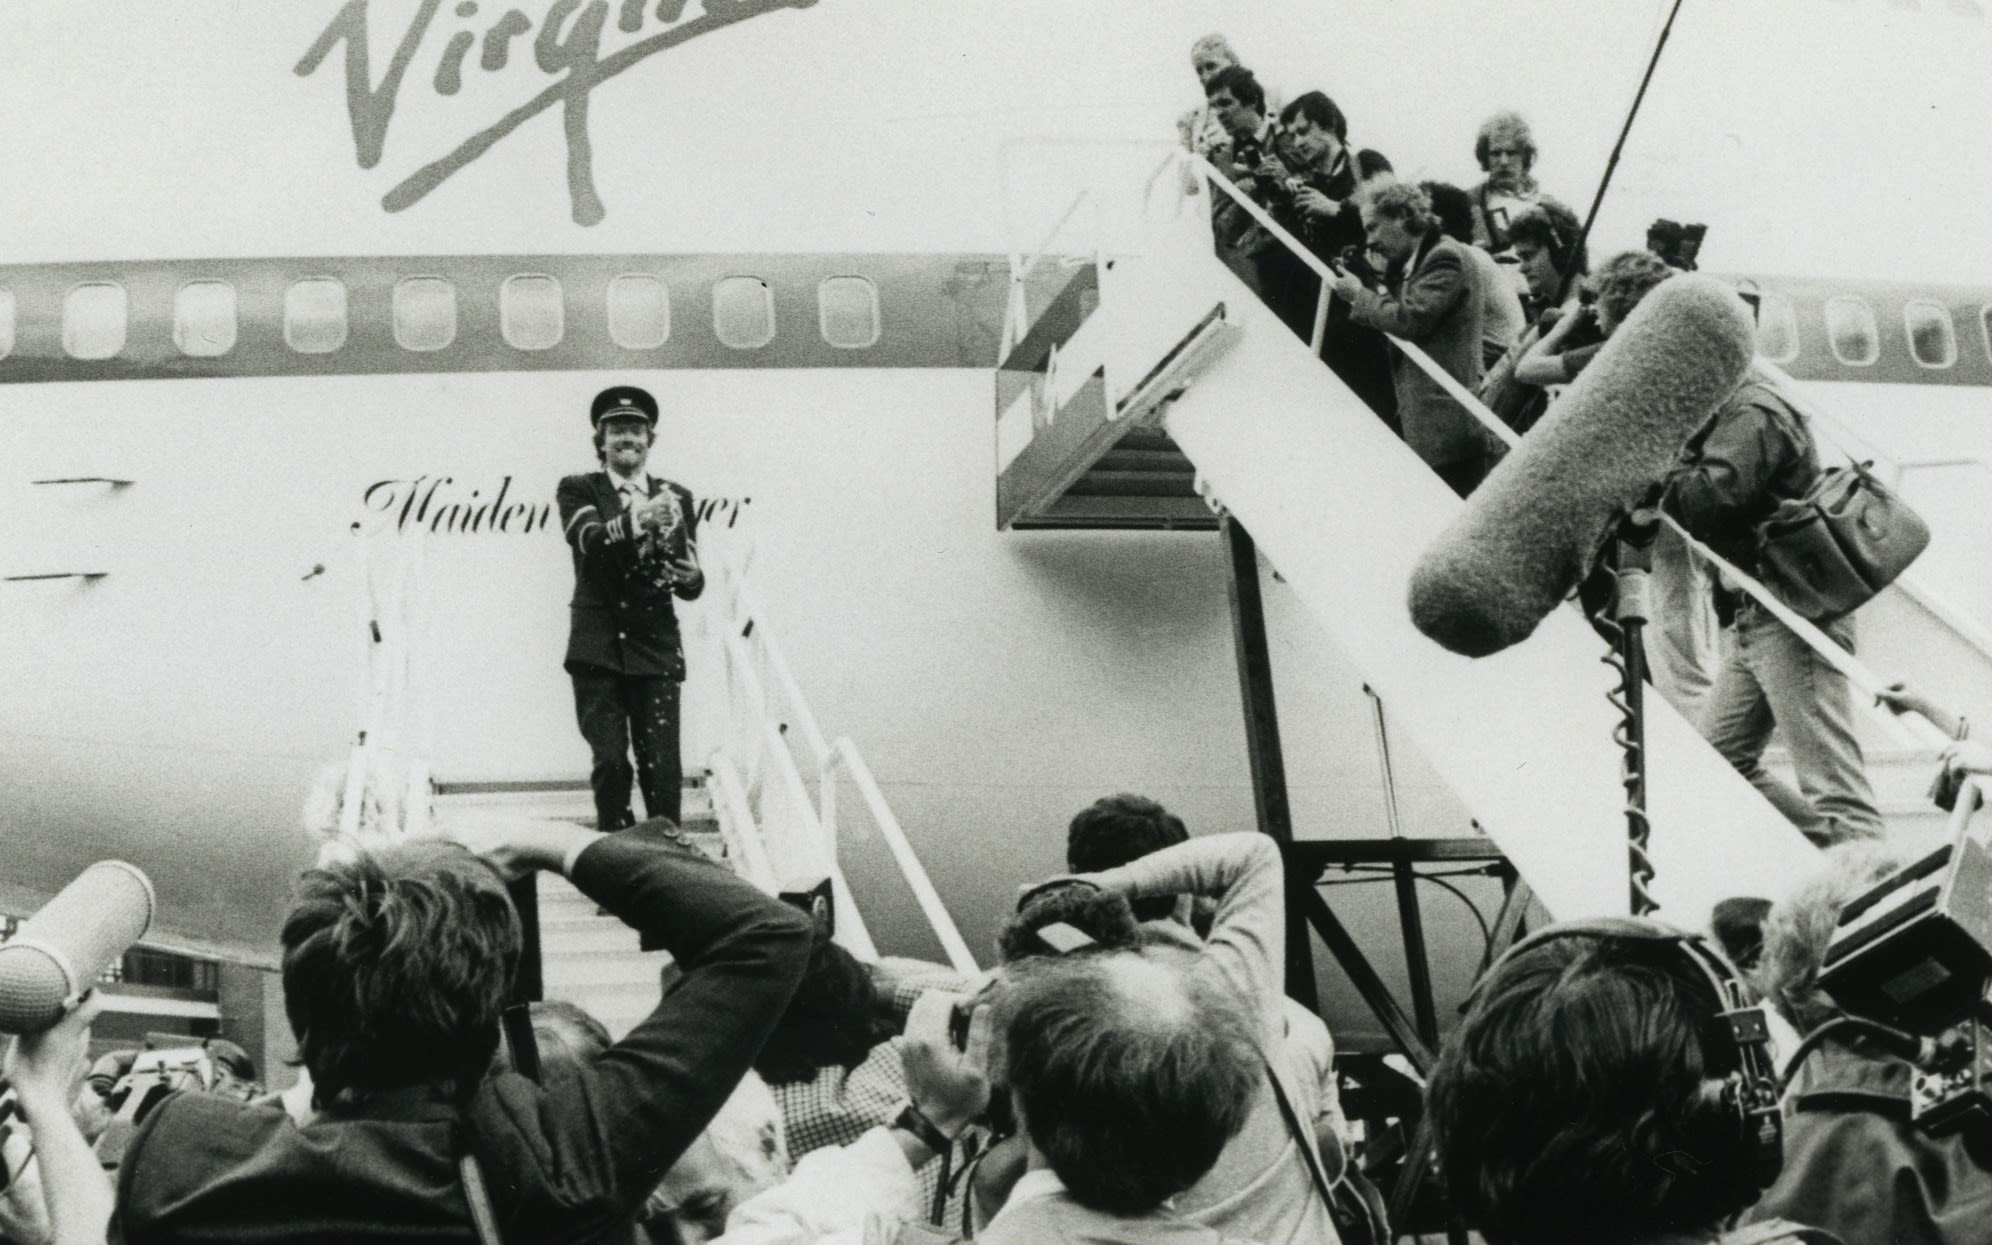 Richard Branson celebrating surrounded by the media in front of a Virgin Atlantic aeroplane